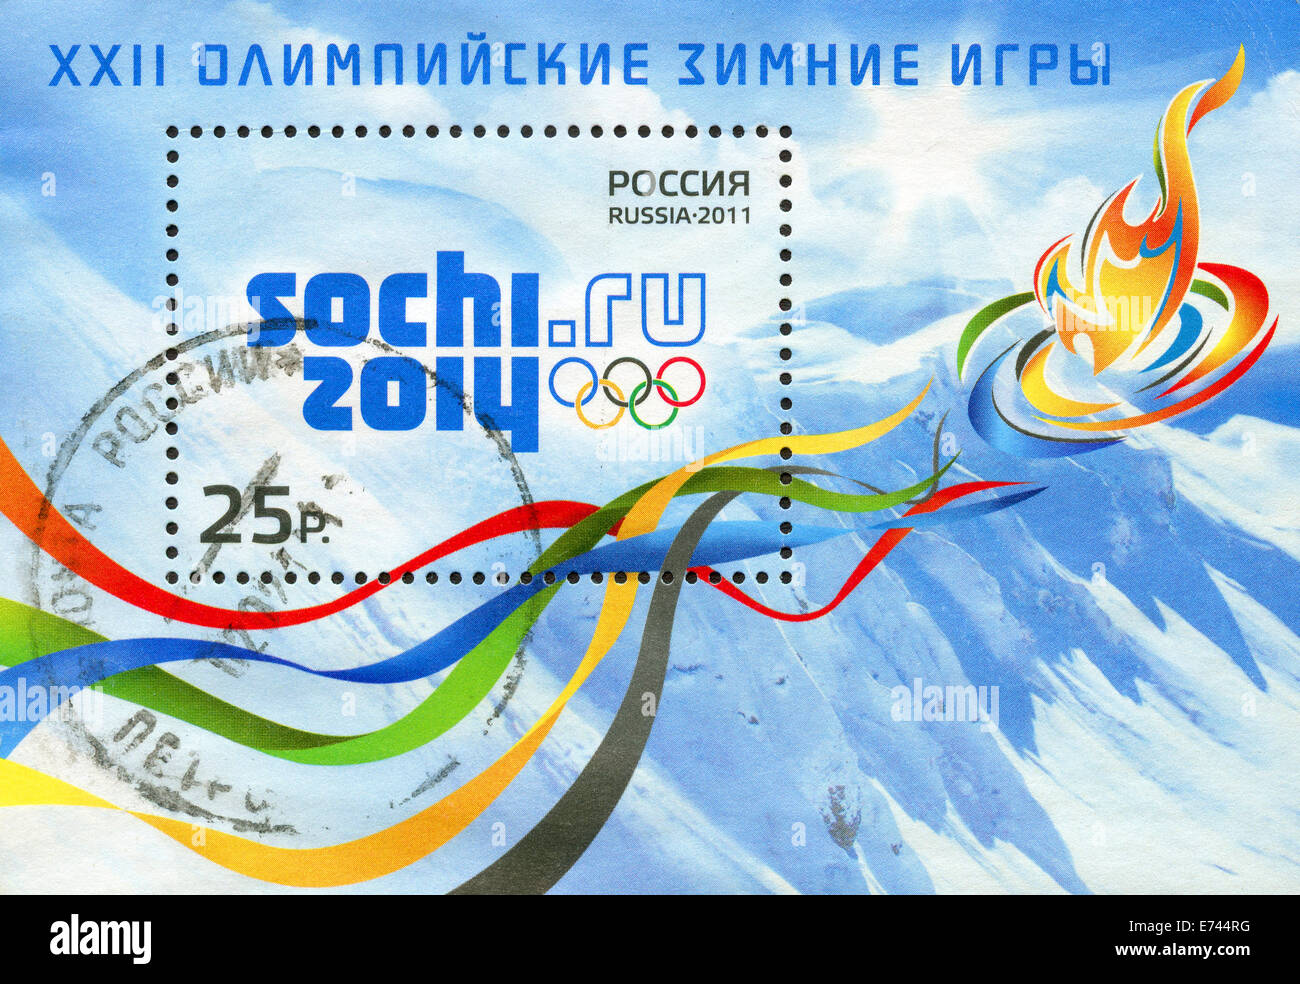 Russia stamp depicting Sochi winter Olympics - Stock Image